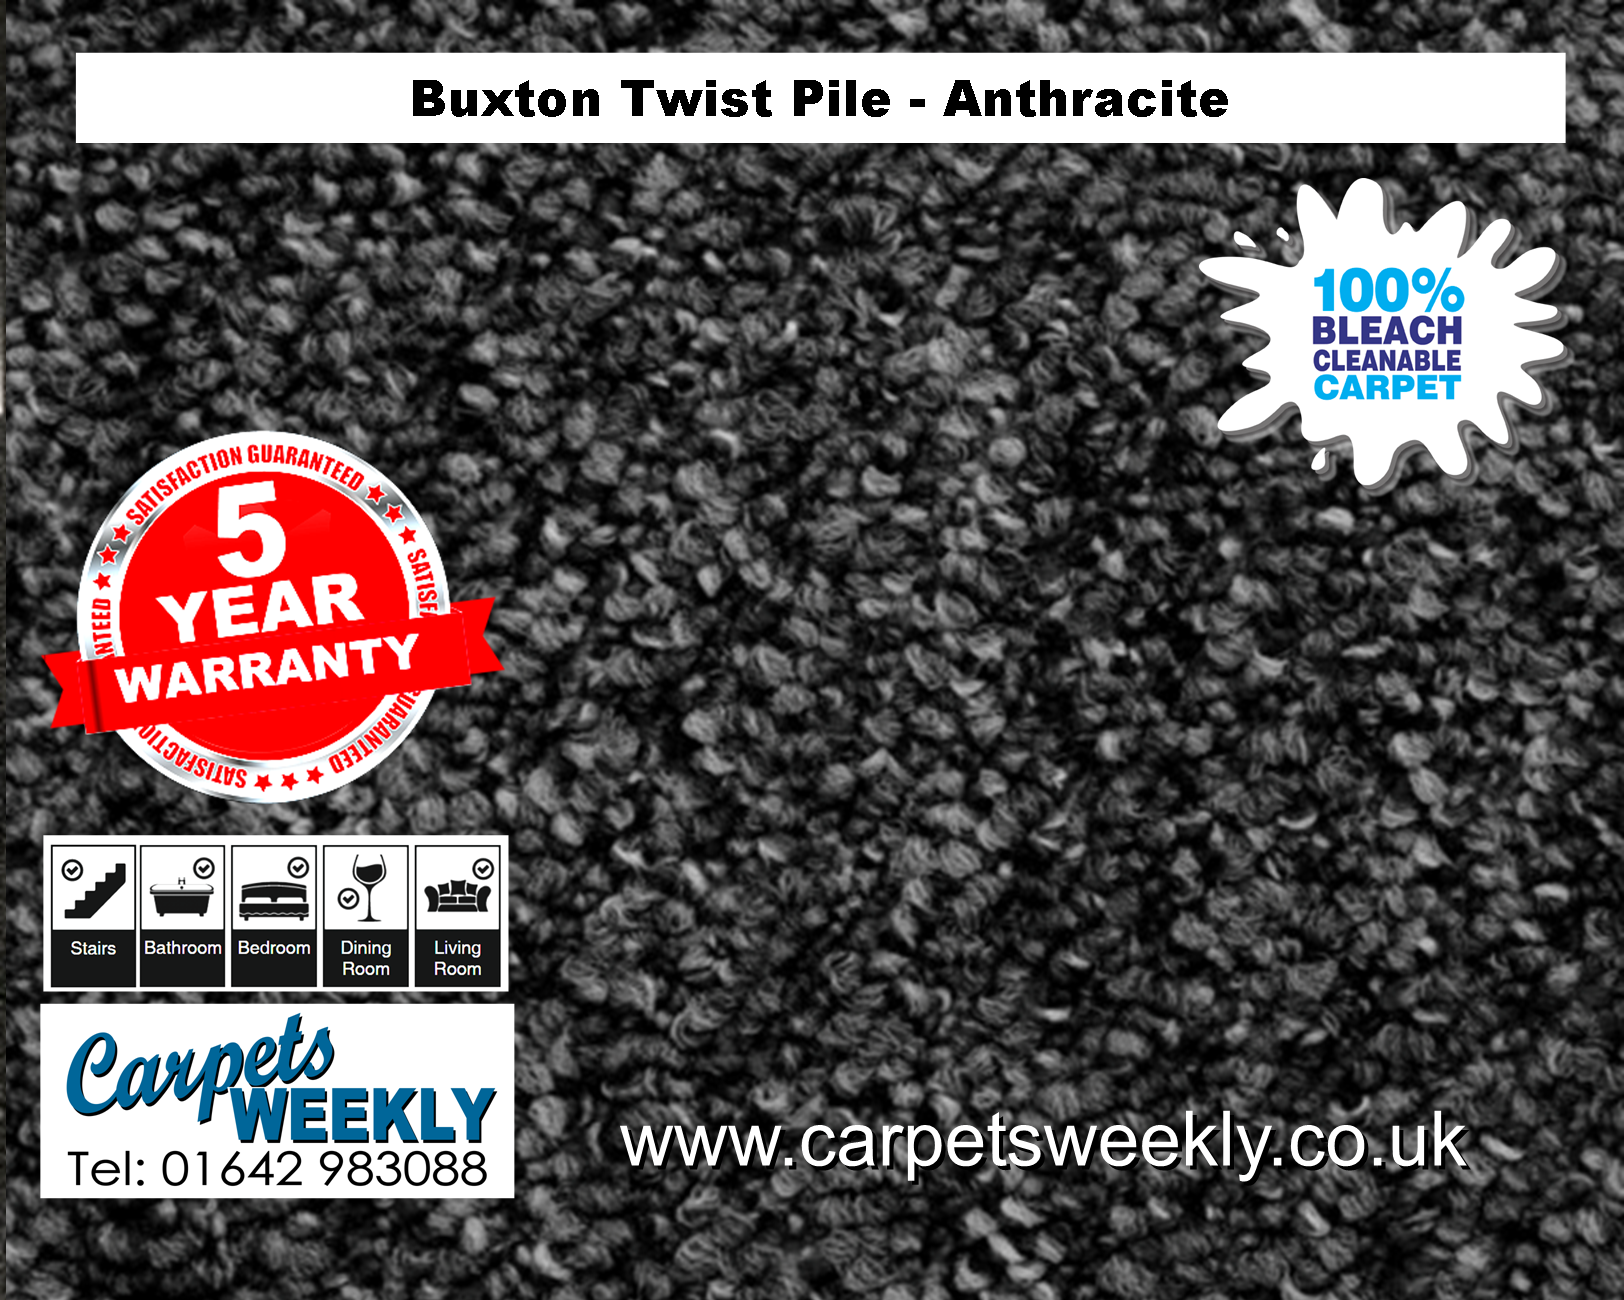 Buxton Monet Twist Pile Carpet Anthracite from Carpets Weekly